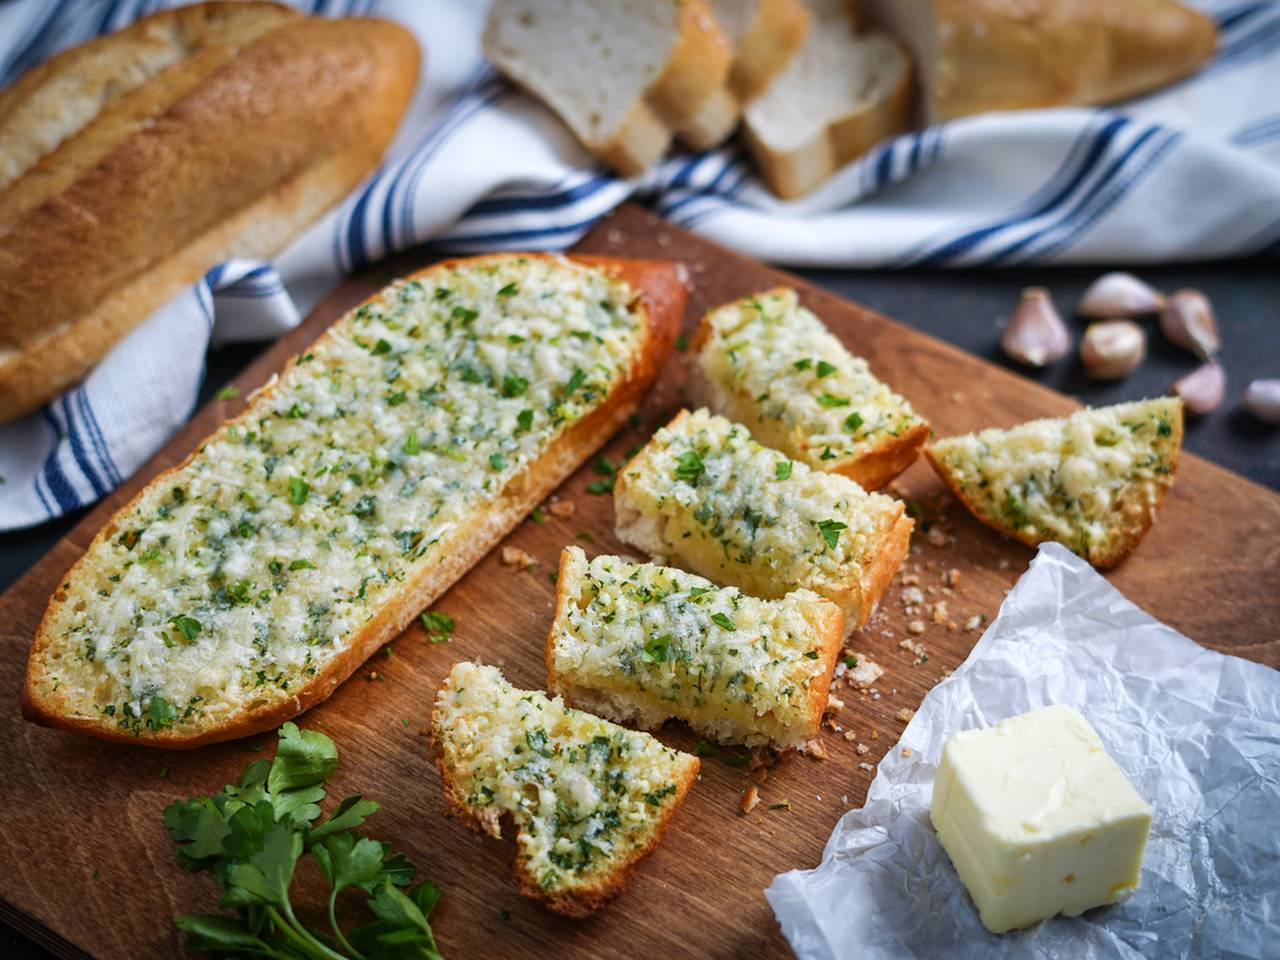 Buttery Garlic Bread with Parmesan Cheese